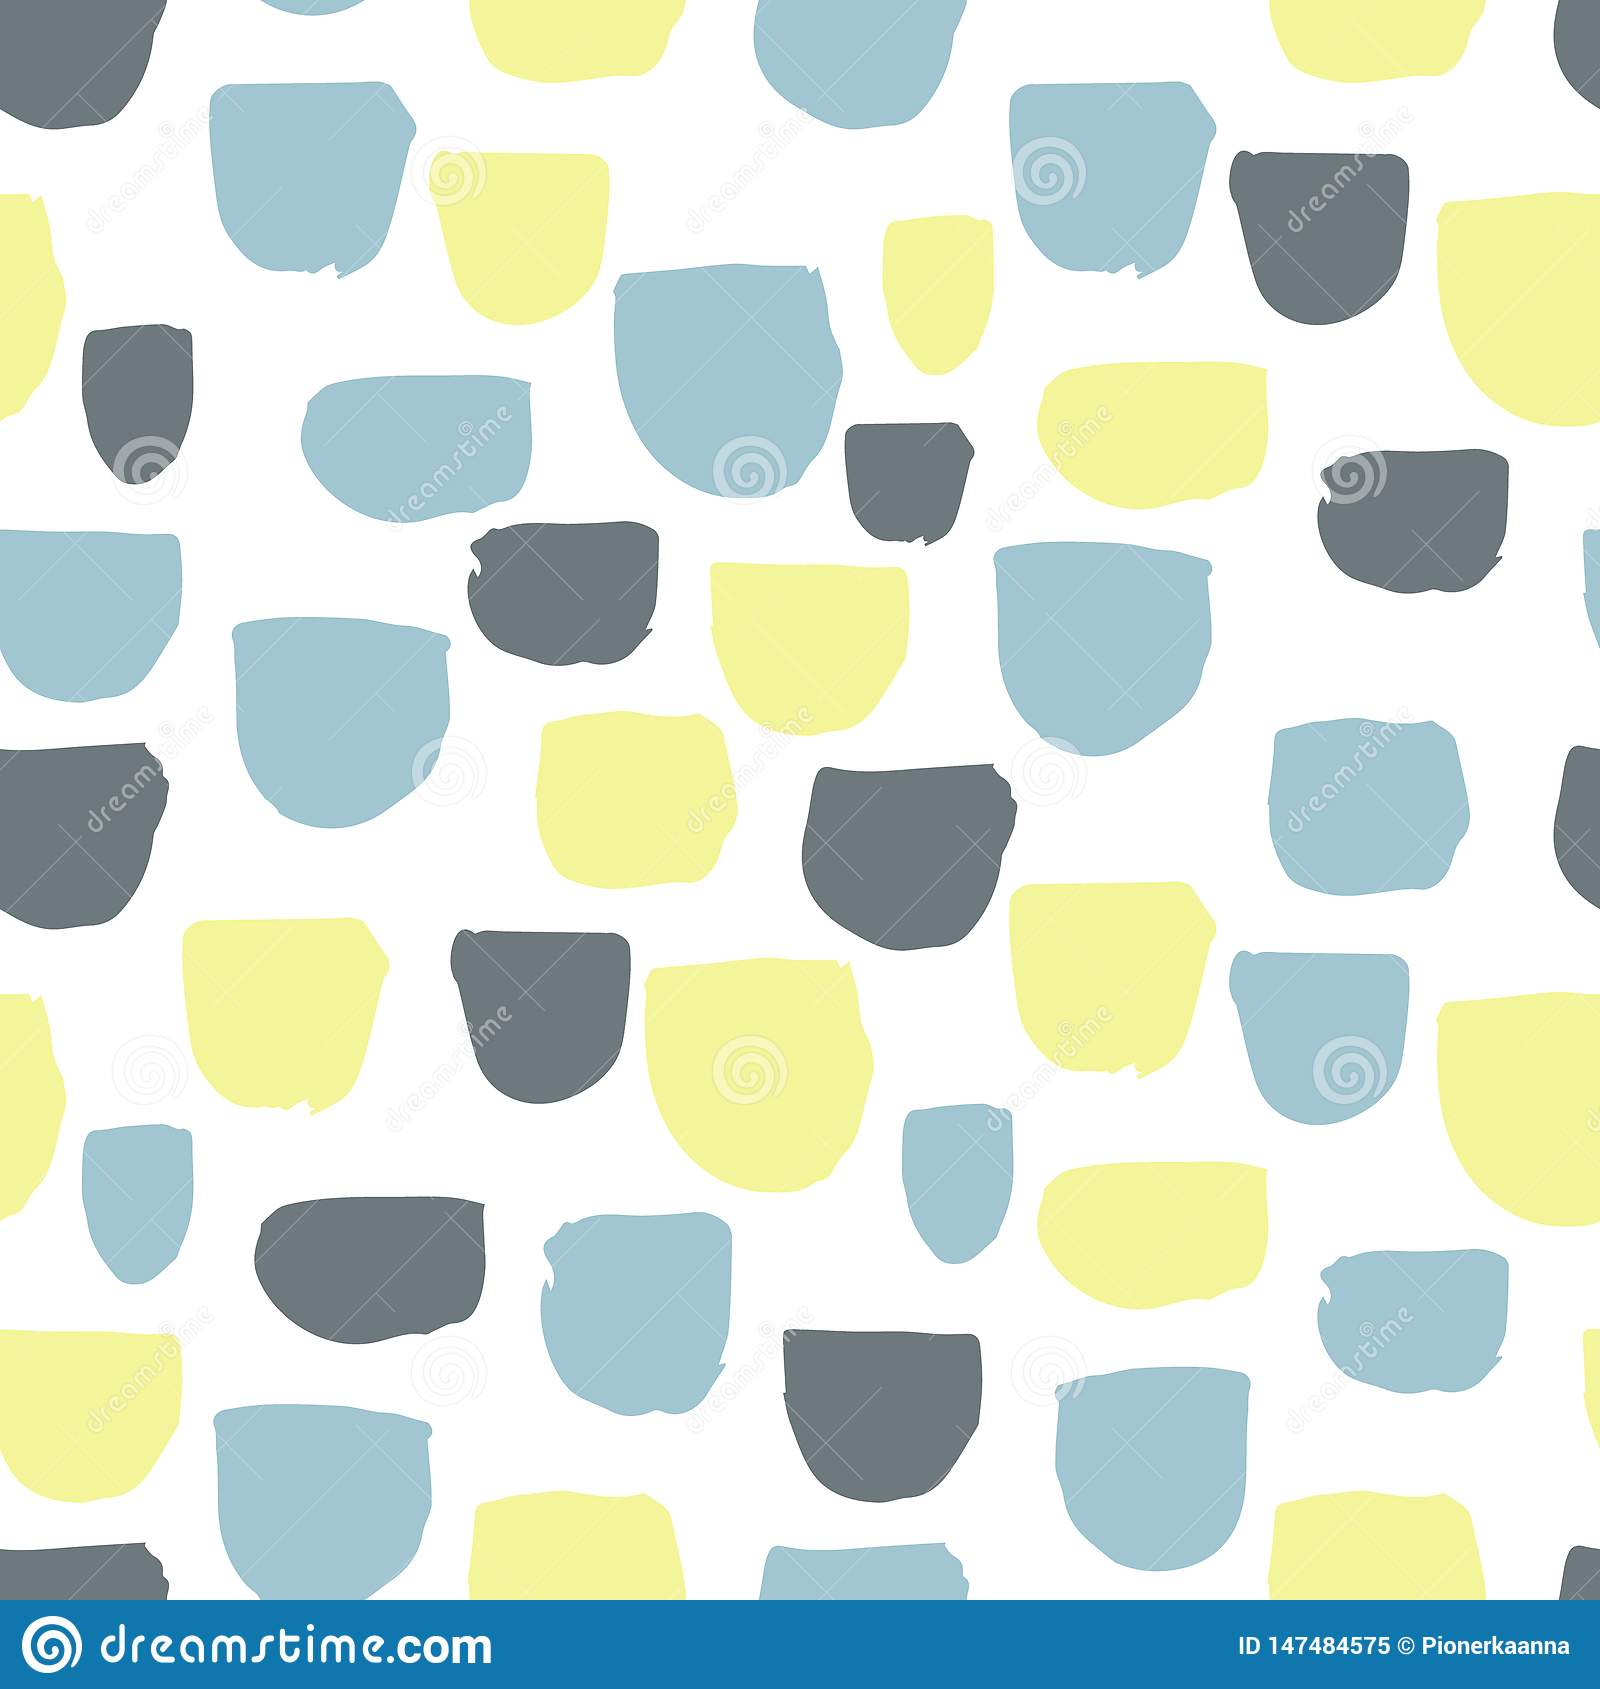 Modern vector abstract seamless geometric pattern with semicircles in scandinavian style.